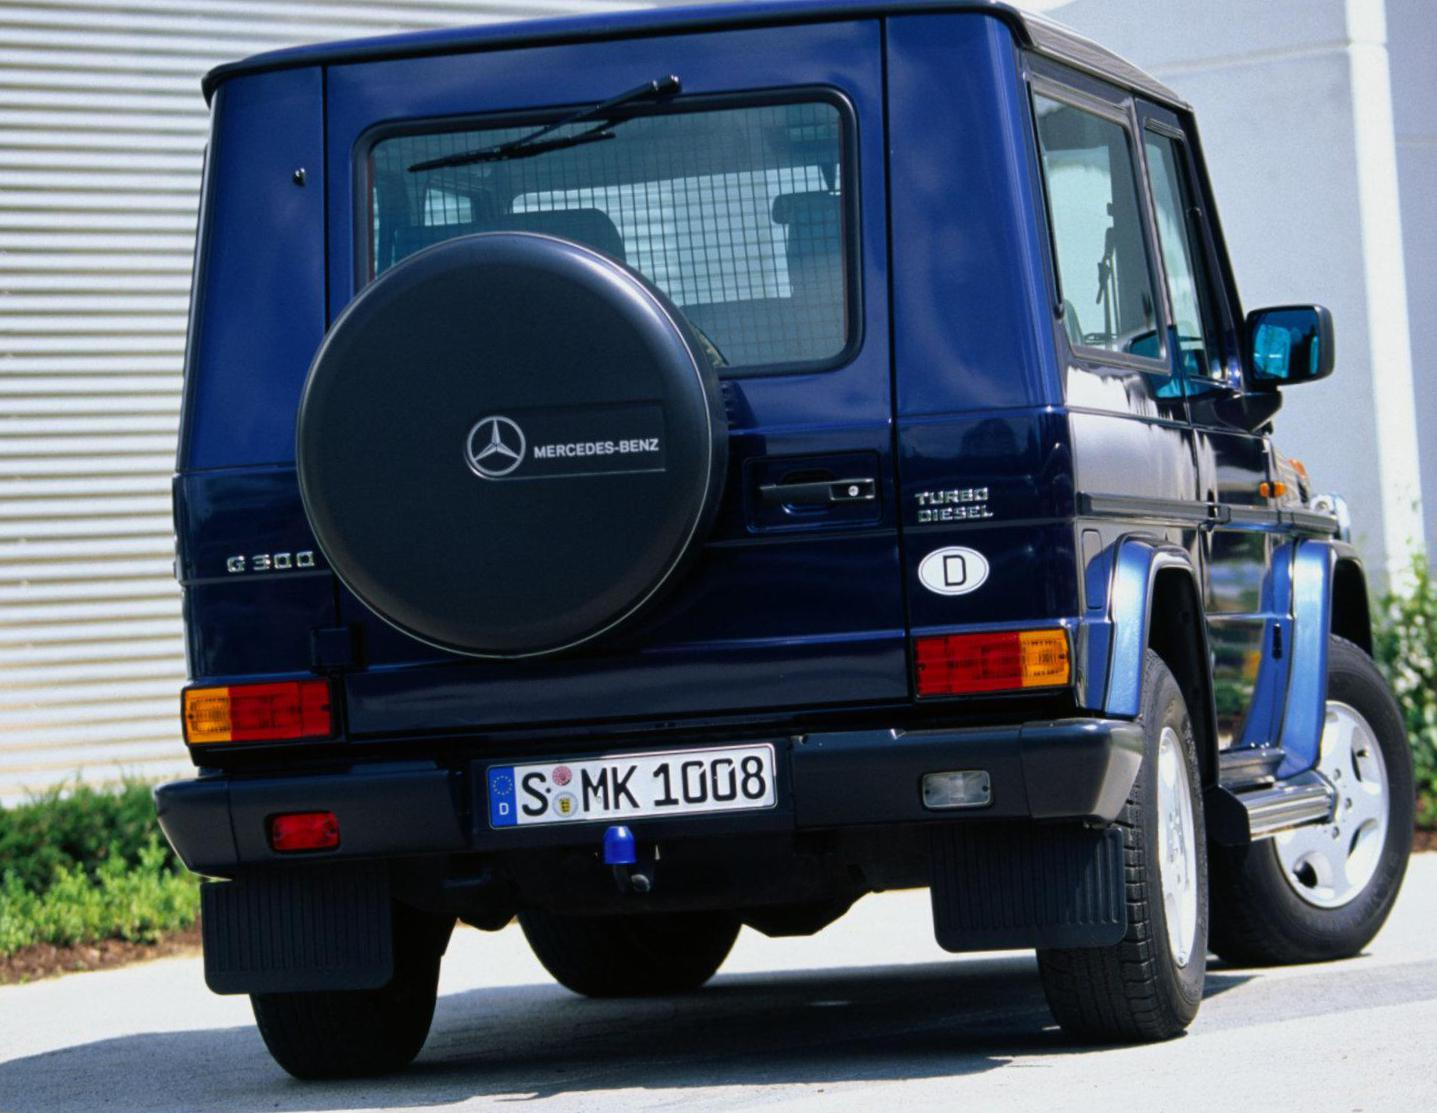 G-Class (W463) Mercedes parts wagon